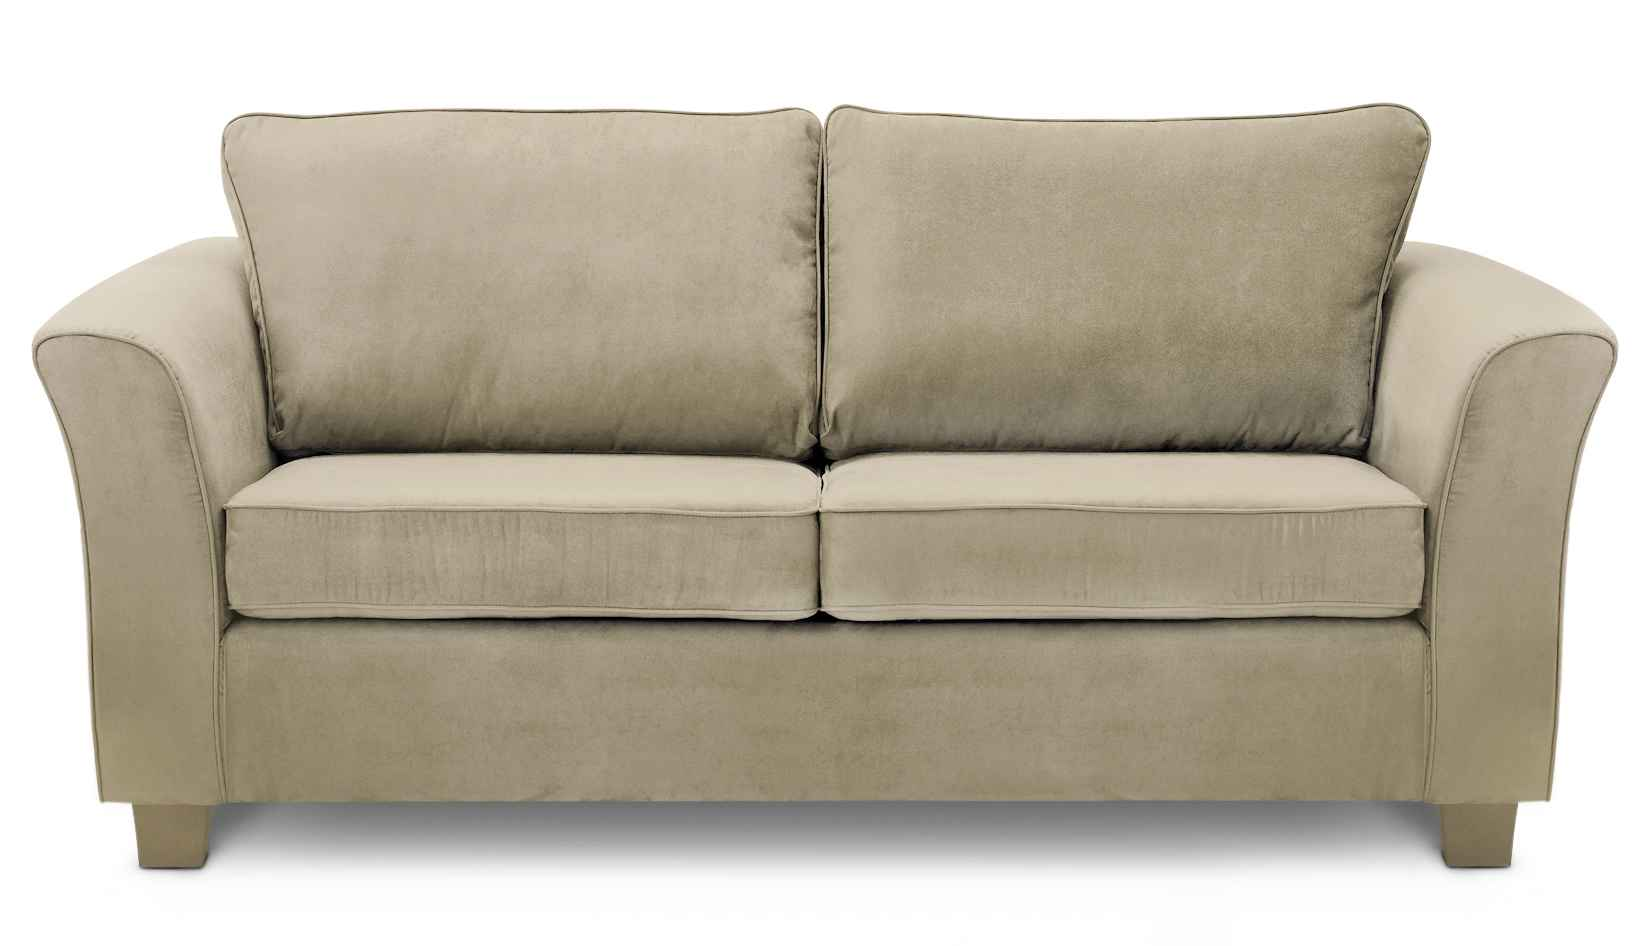 Couches+For+Sale Cheap brown fabric sofa for sale